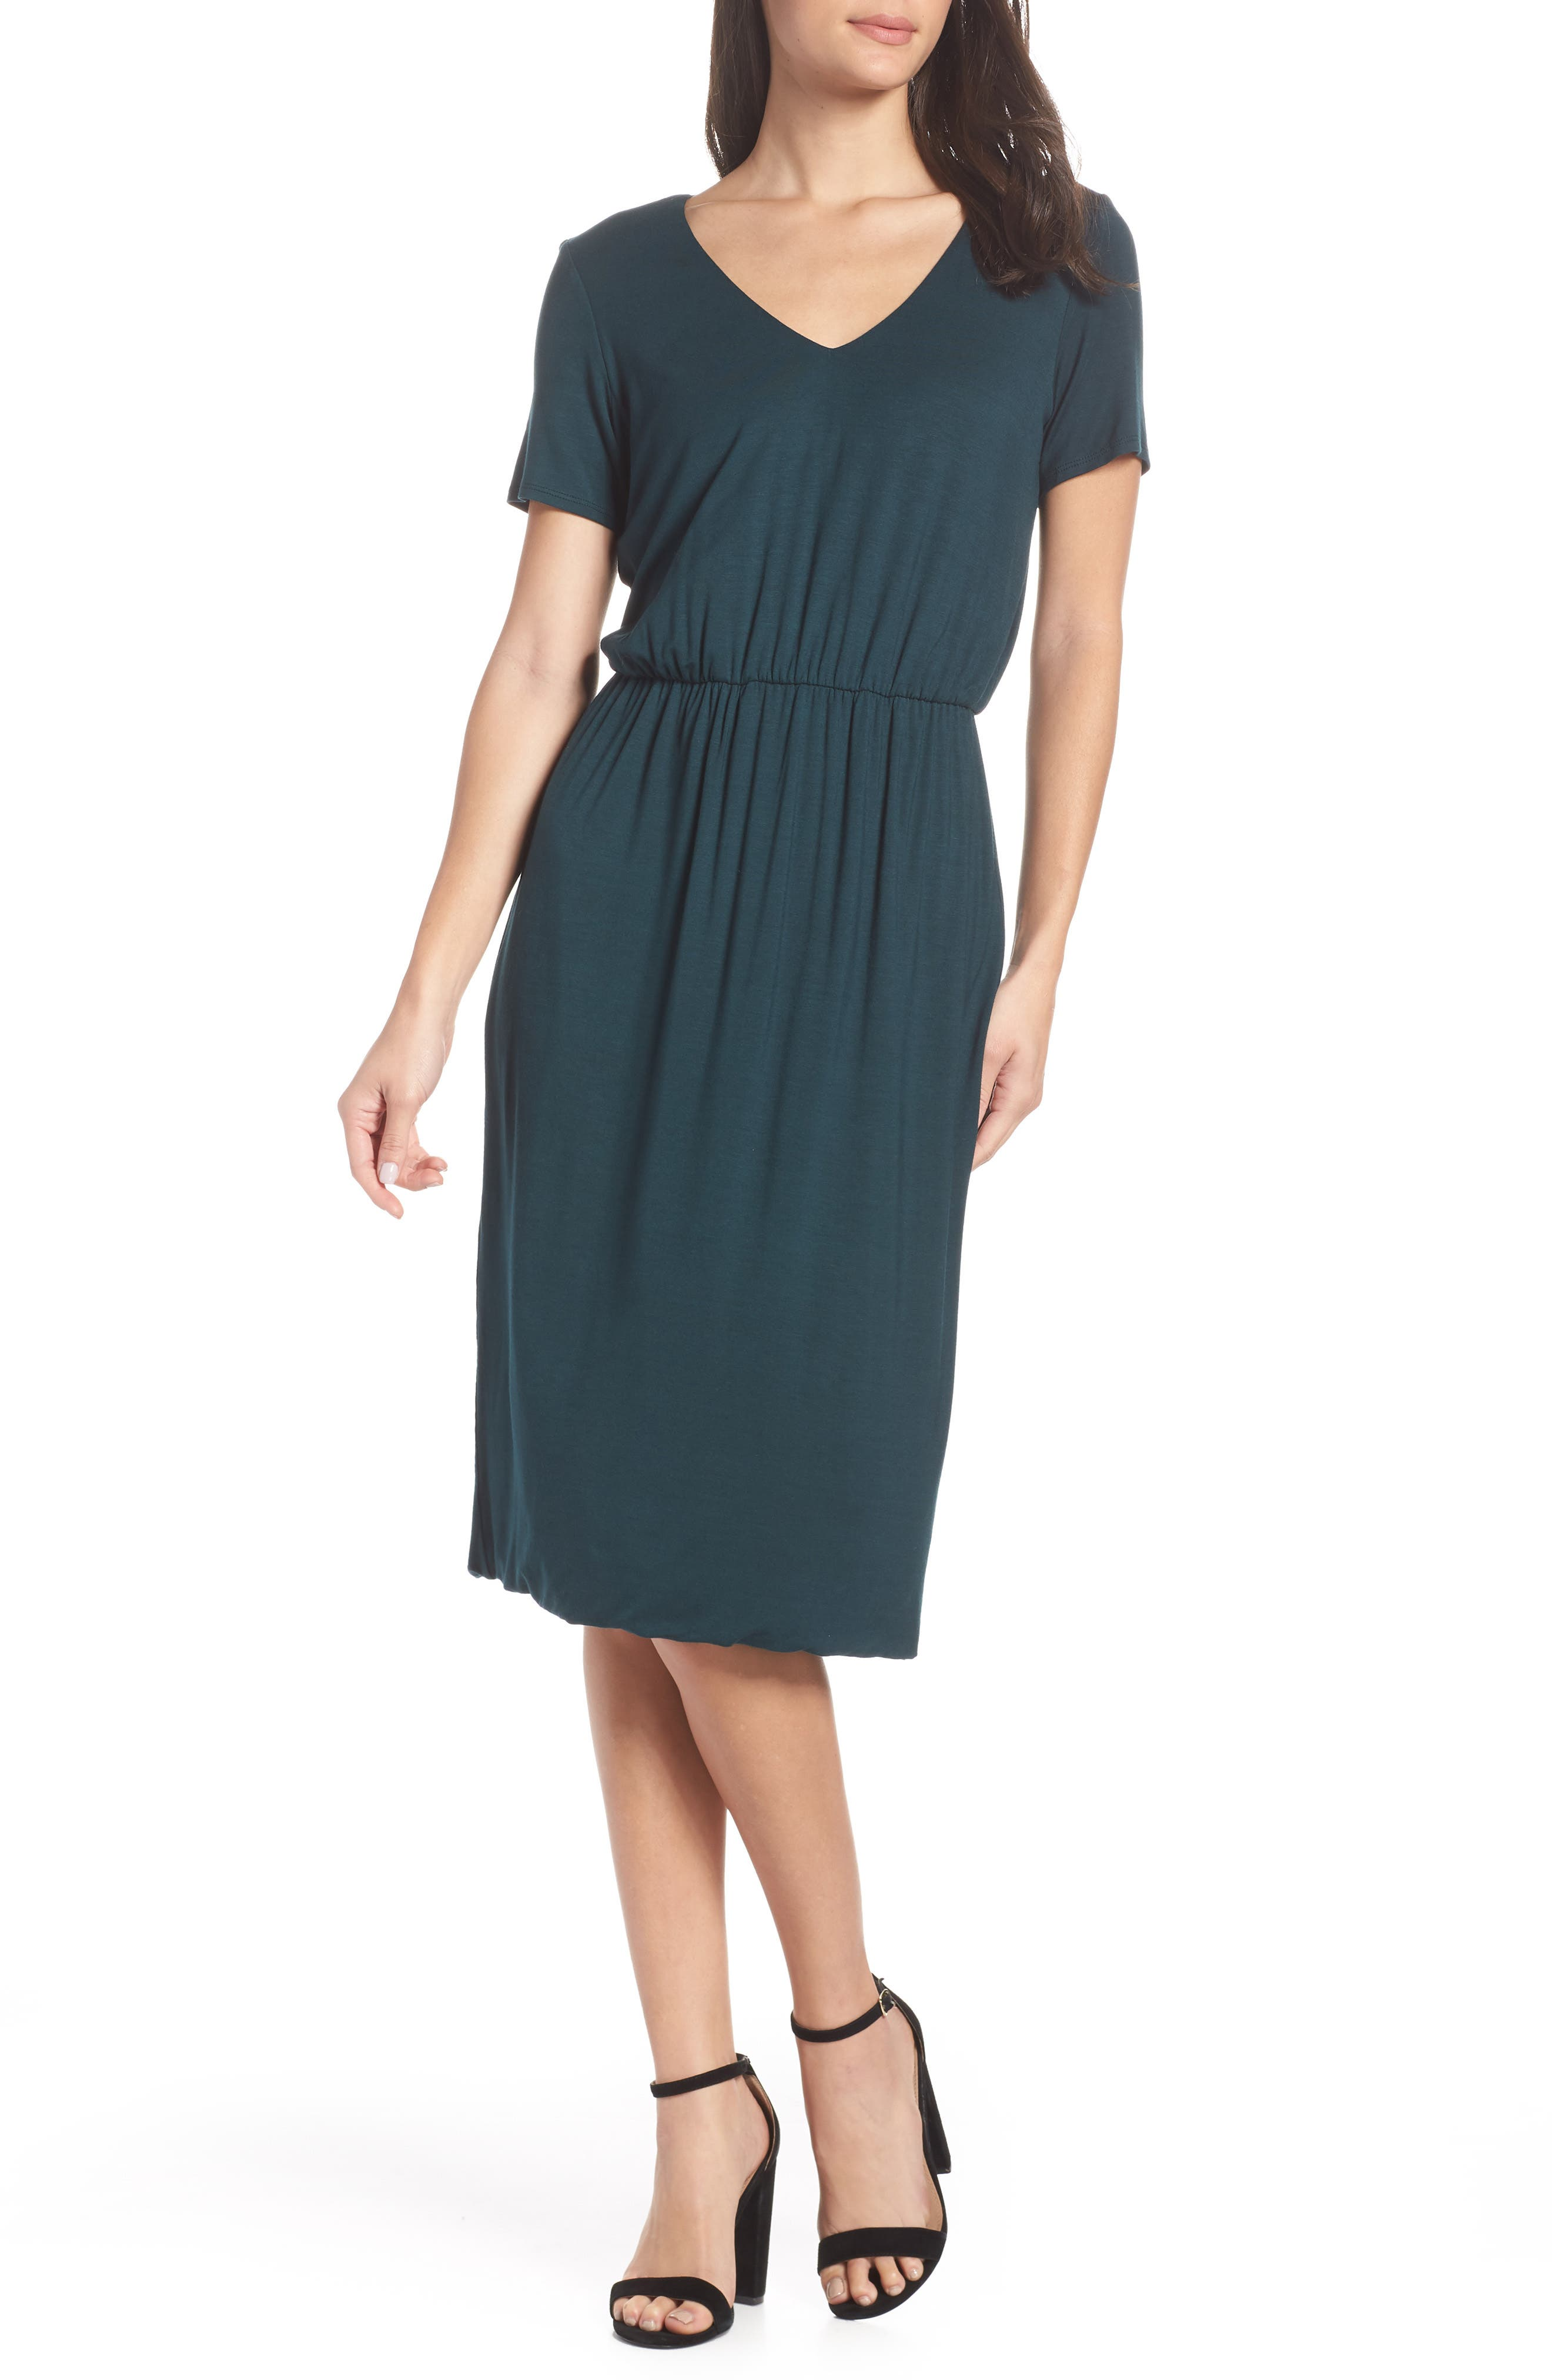 CHARLES HENRY Bloused Knit Dress in Pine